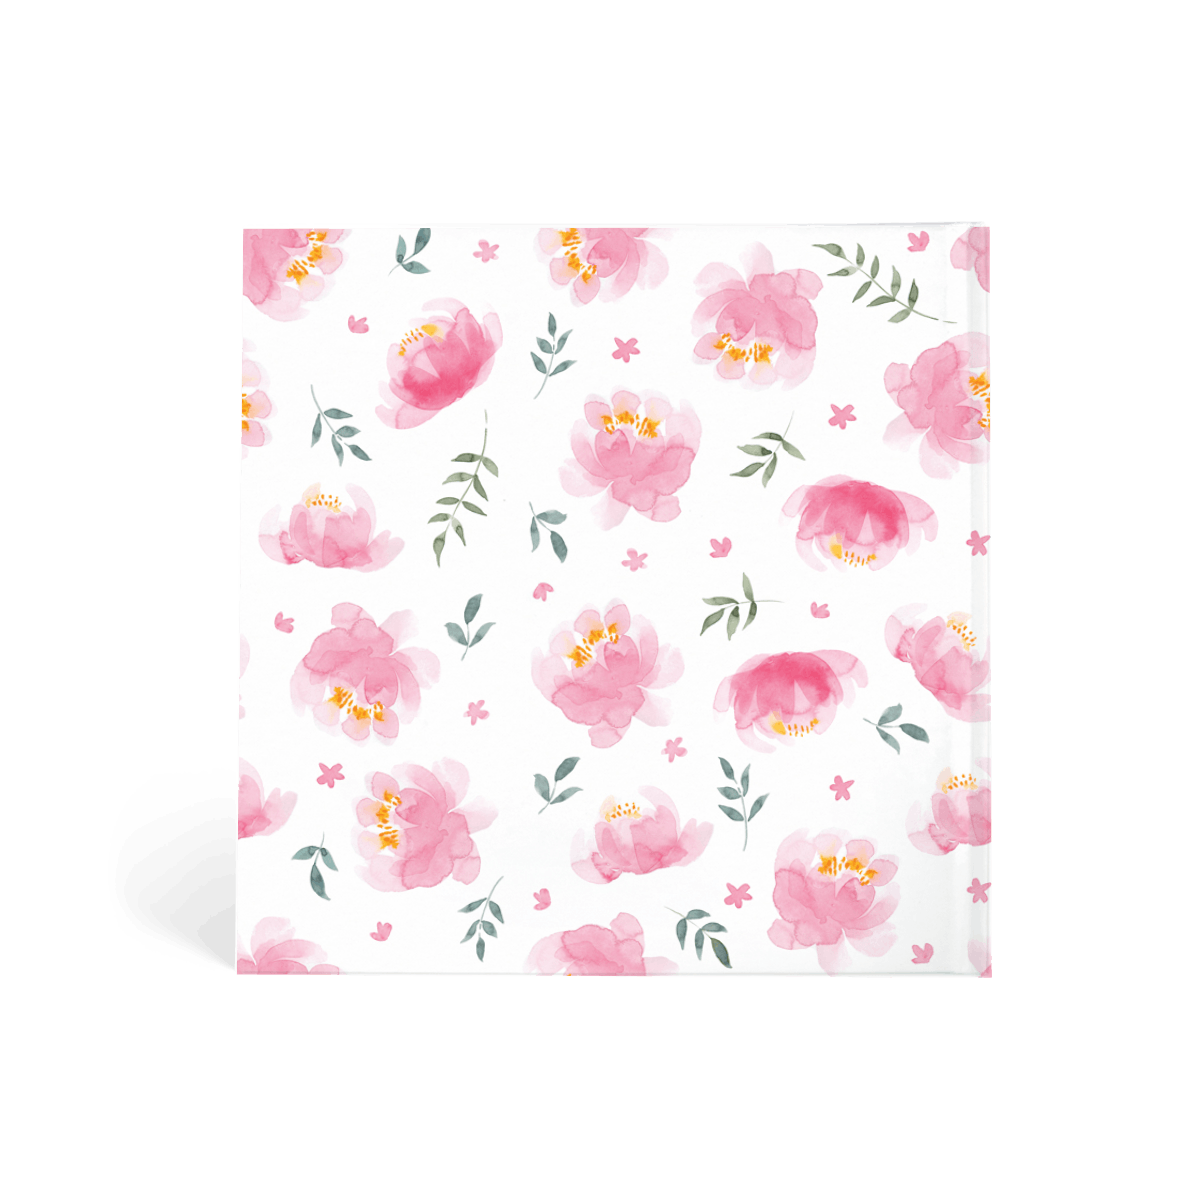 Https%3a%2f%2fwww.papier.com%2fproduct image%2f42385%2f24%2fpeonies 10846 rueckseite 1533117385.png?ixlib=rb 1.1